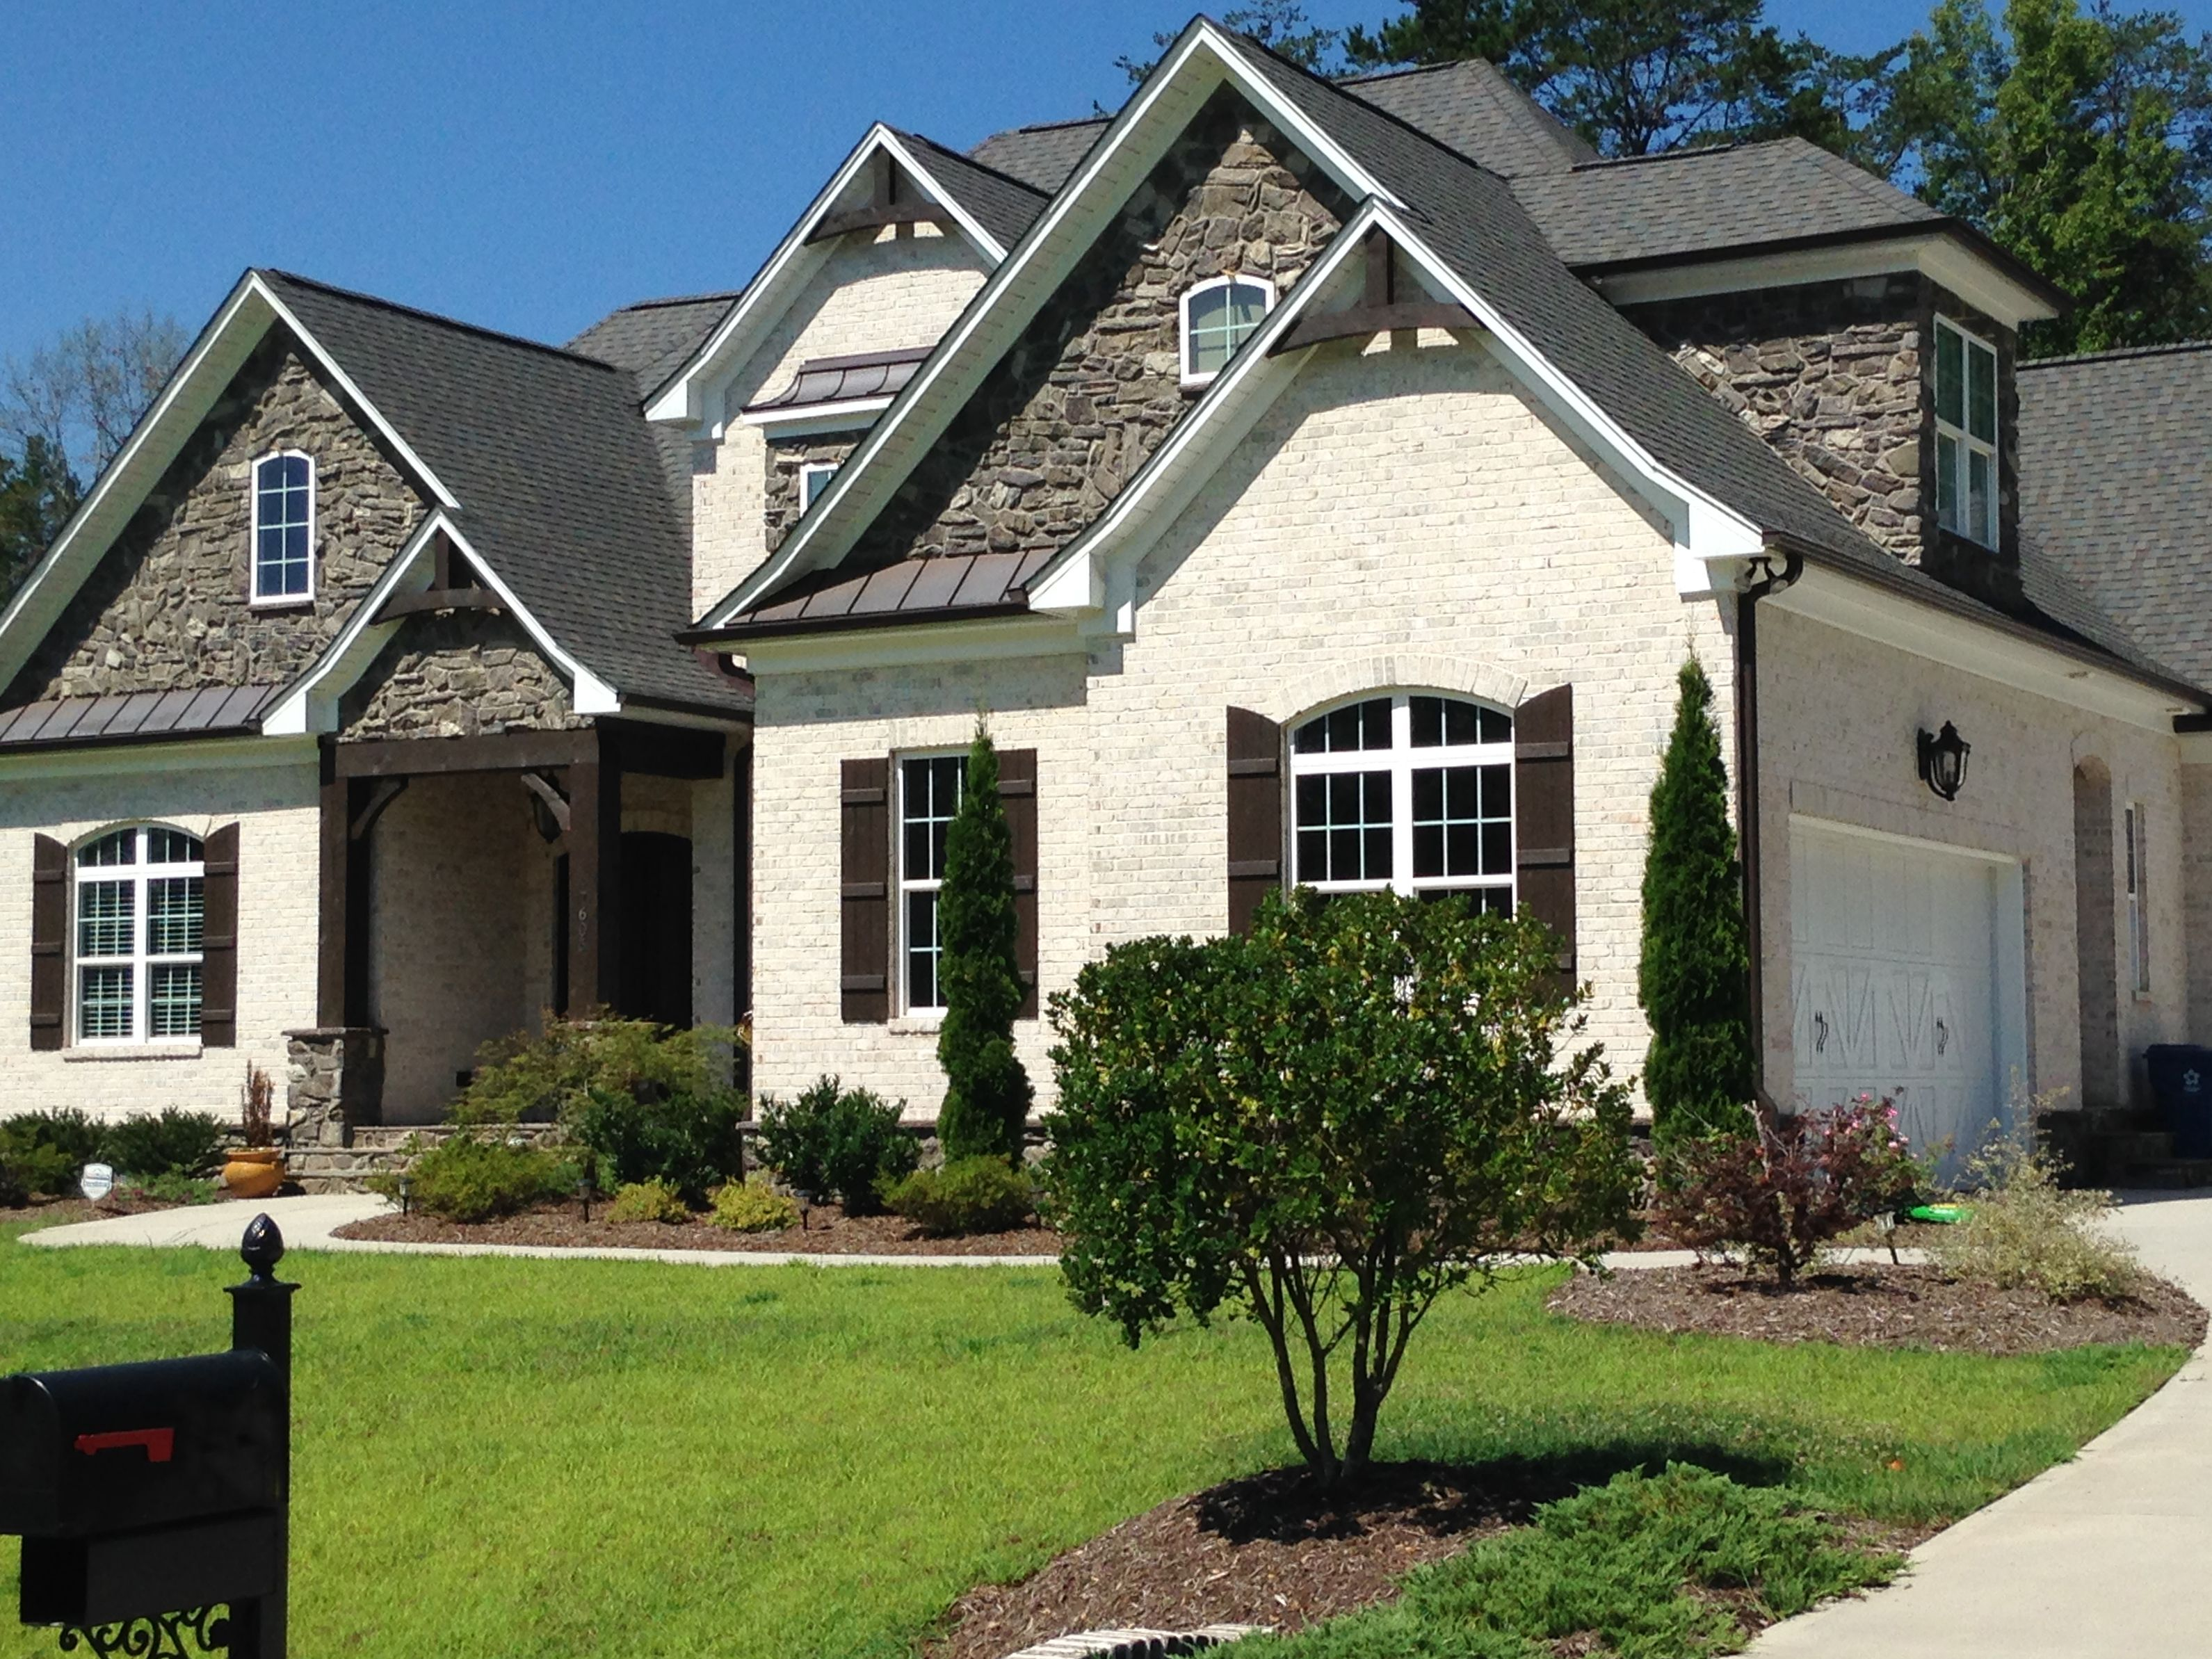 White brick options chesapeake pearl here with gray roof for Exterior home accents